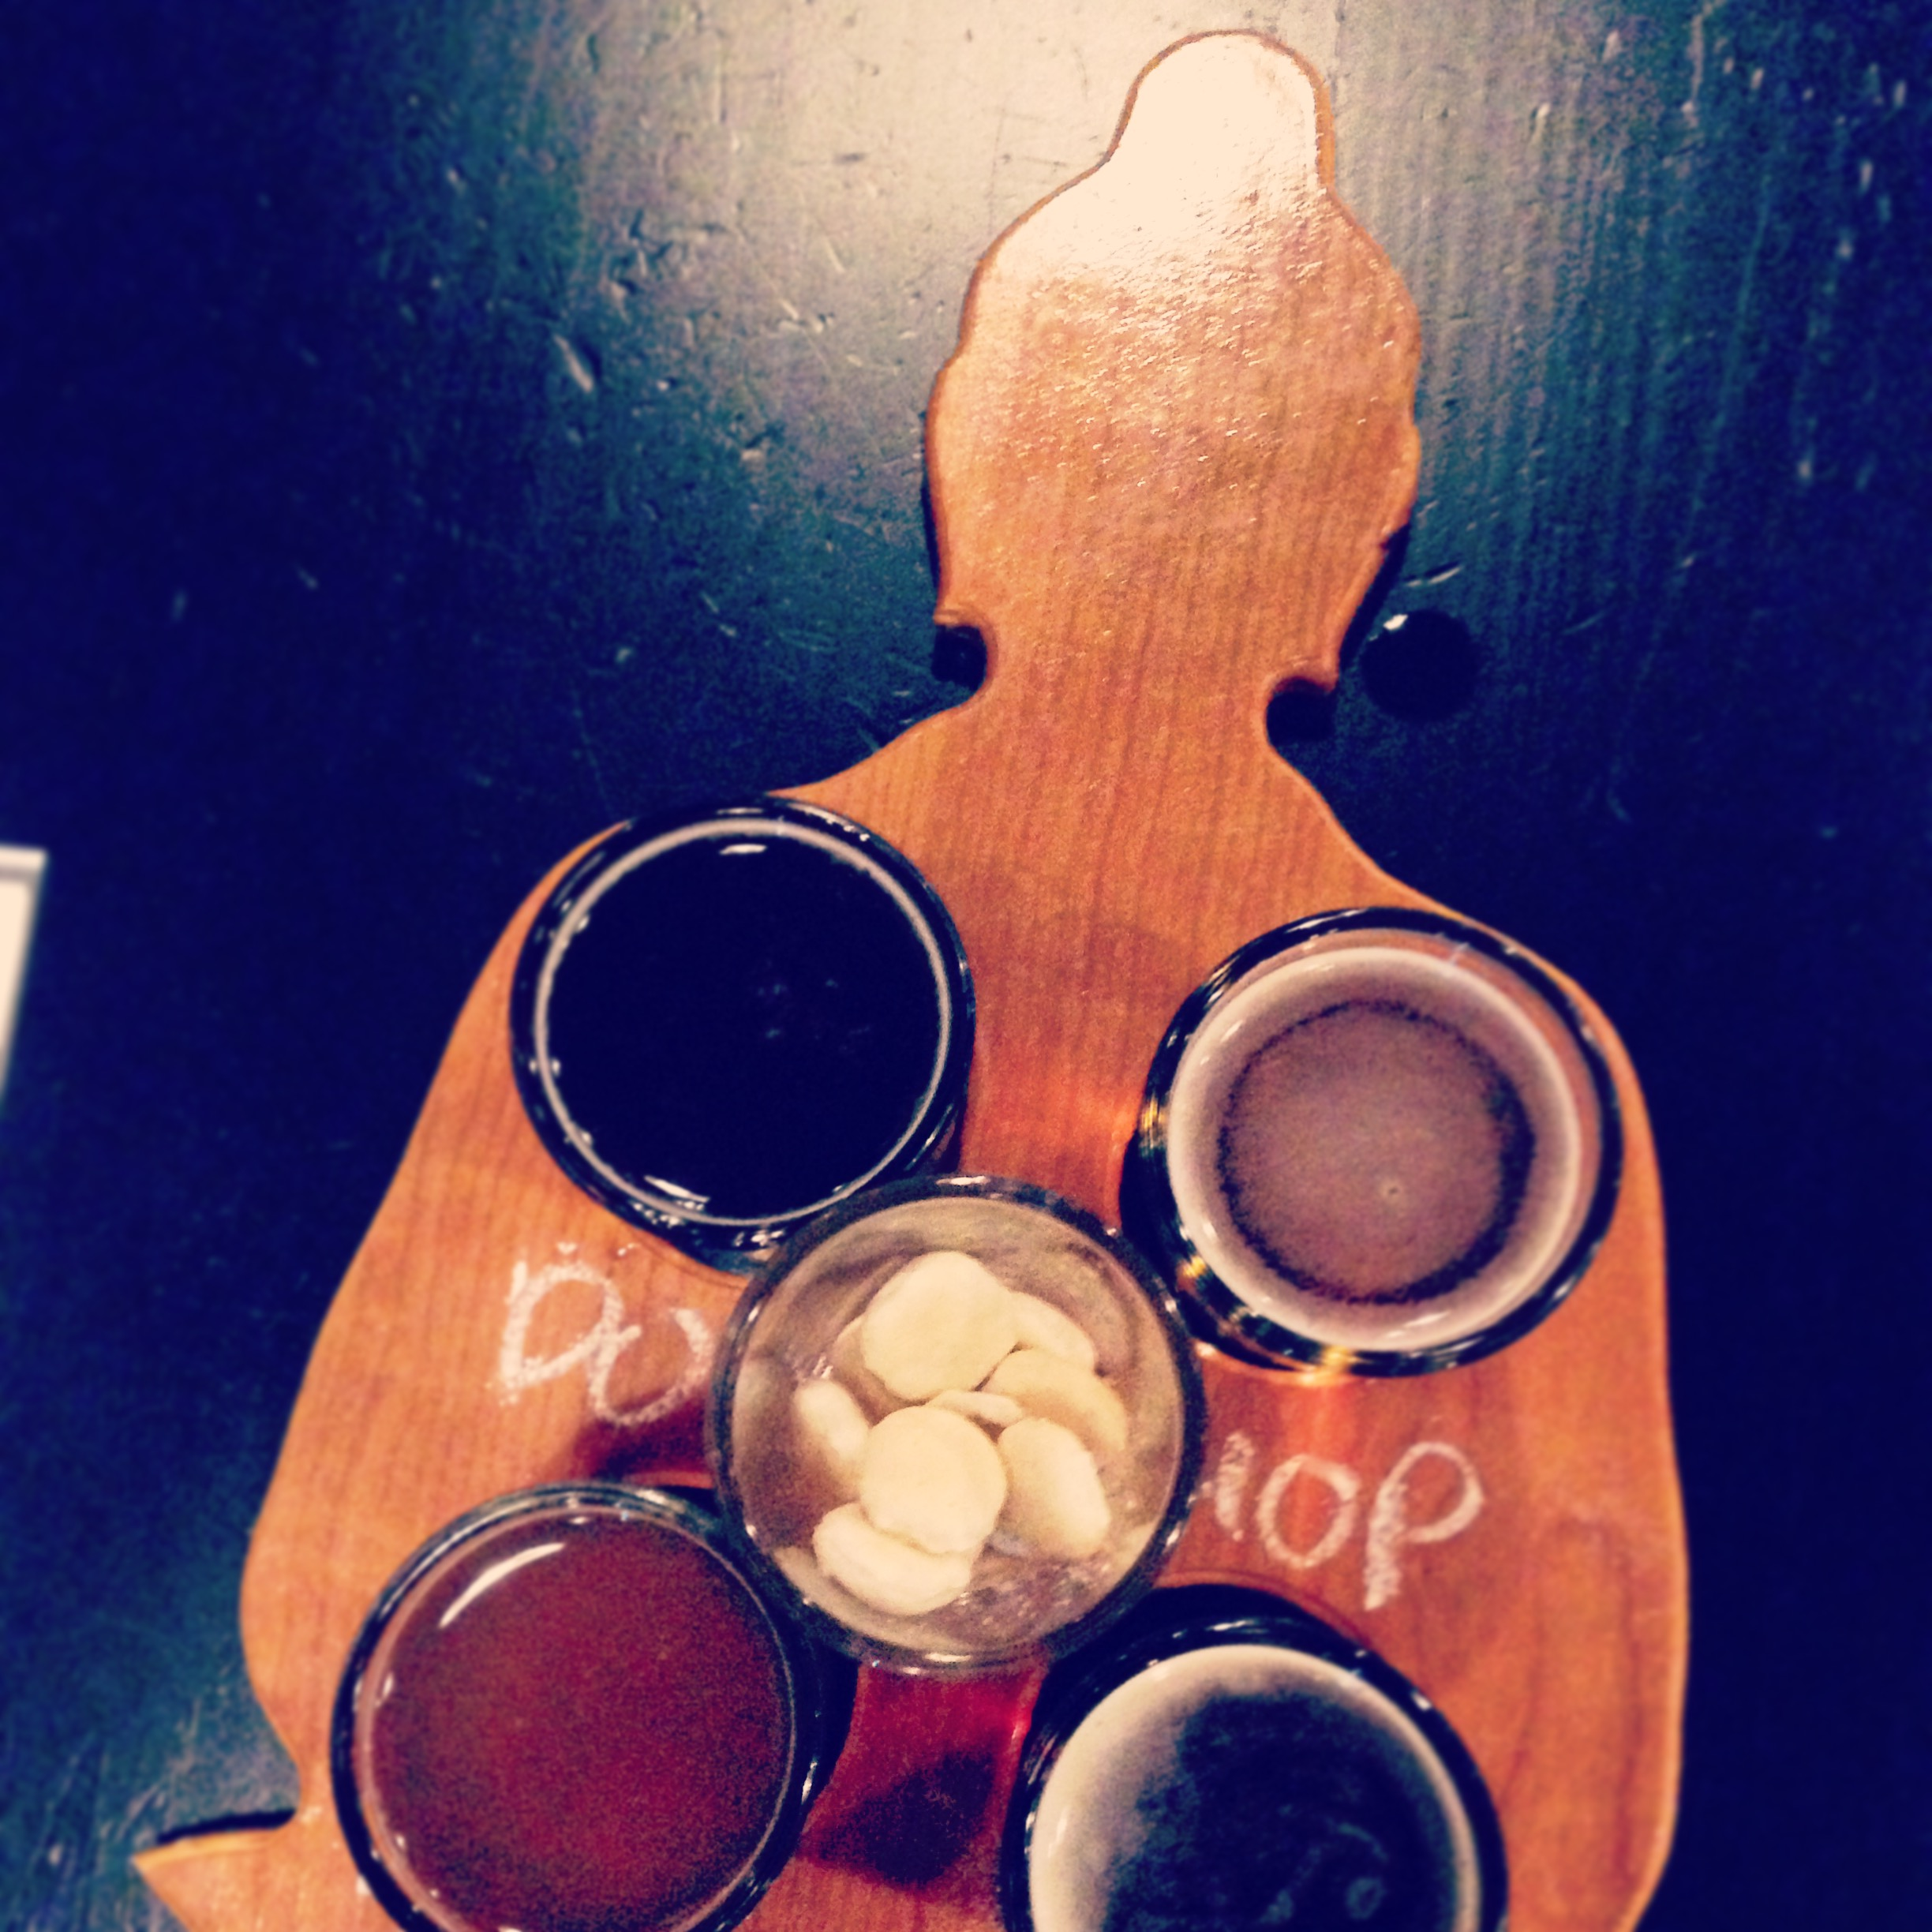 The Four Noble Tasters at Funky Buddha Brewery in Ft. Lauderdale, FL.